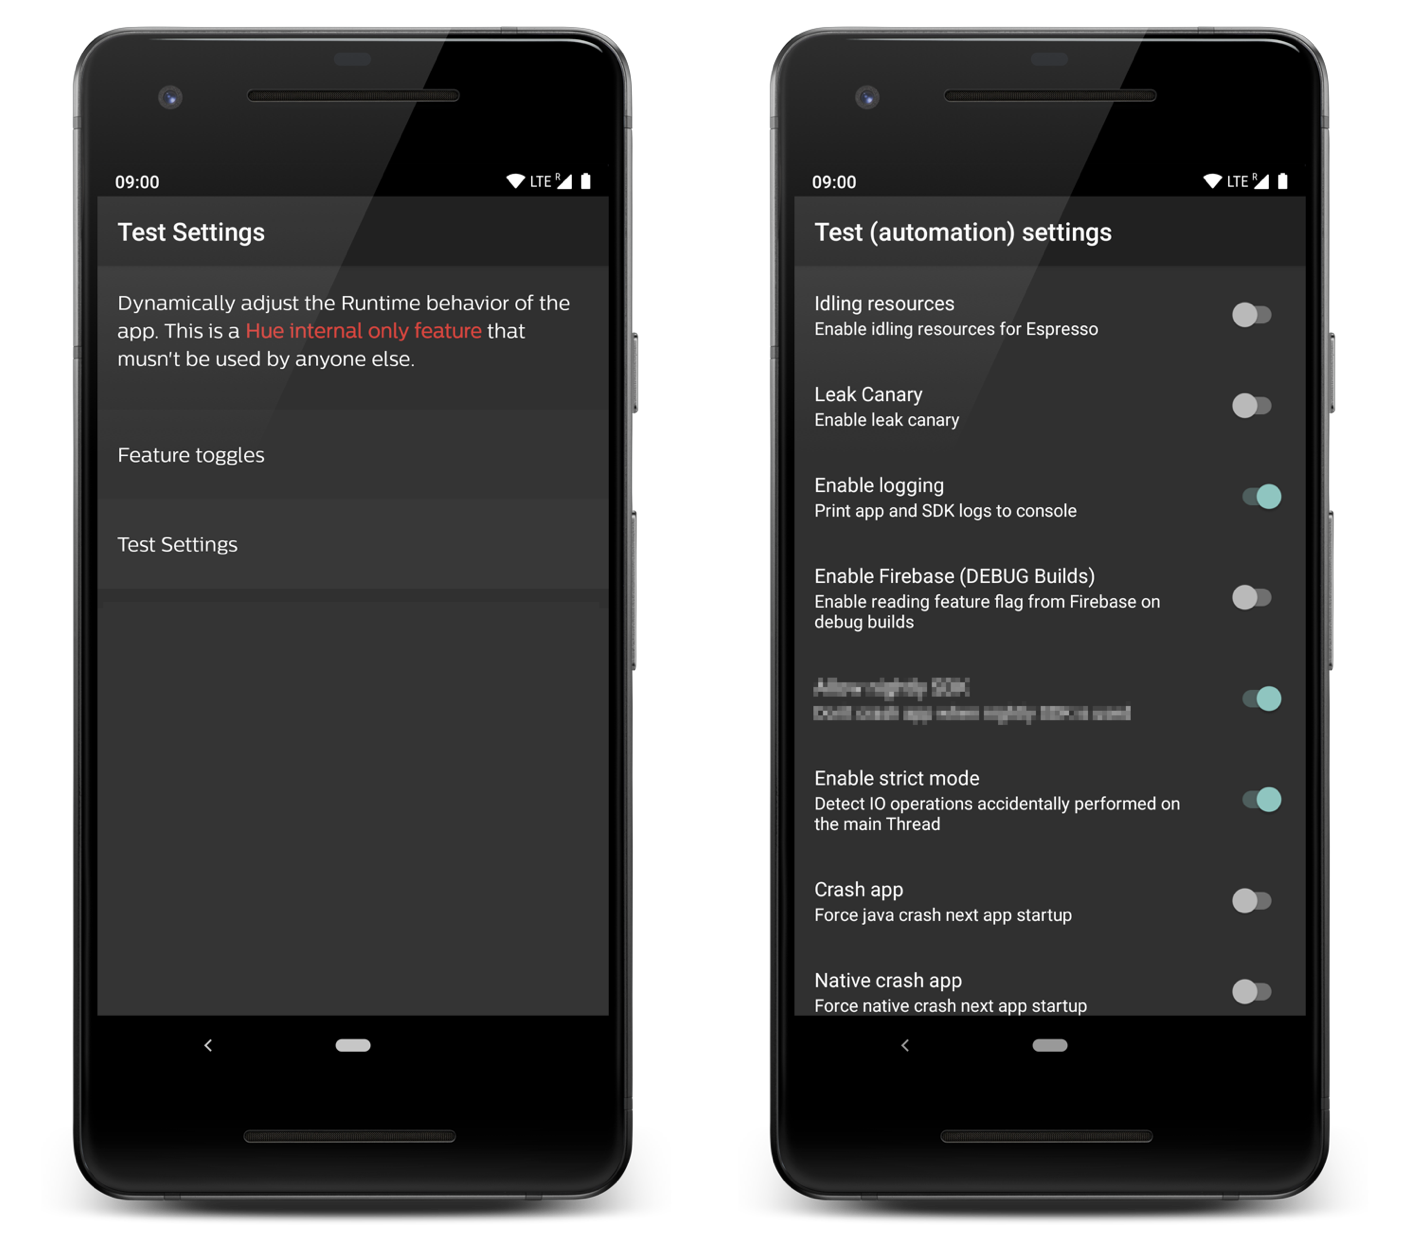 Test settings activity to dynamically configure behavior in the app